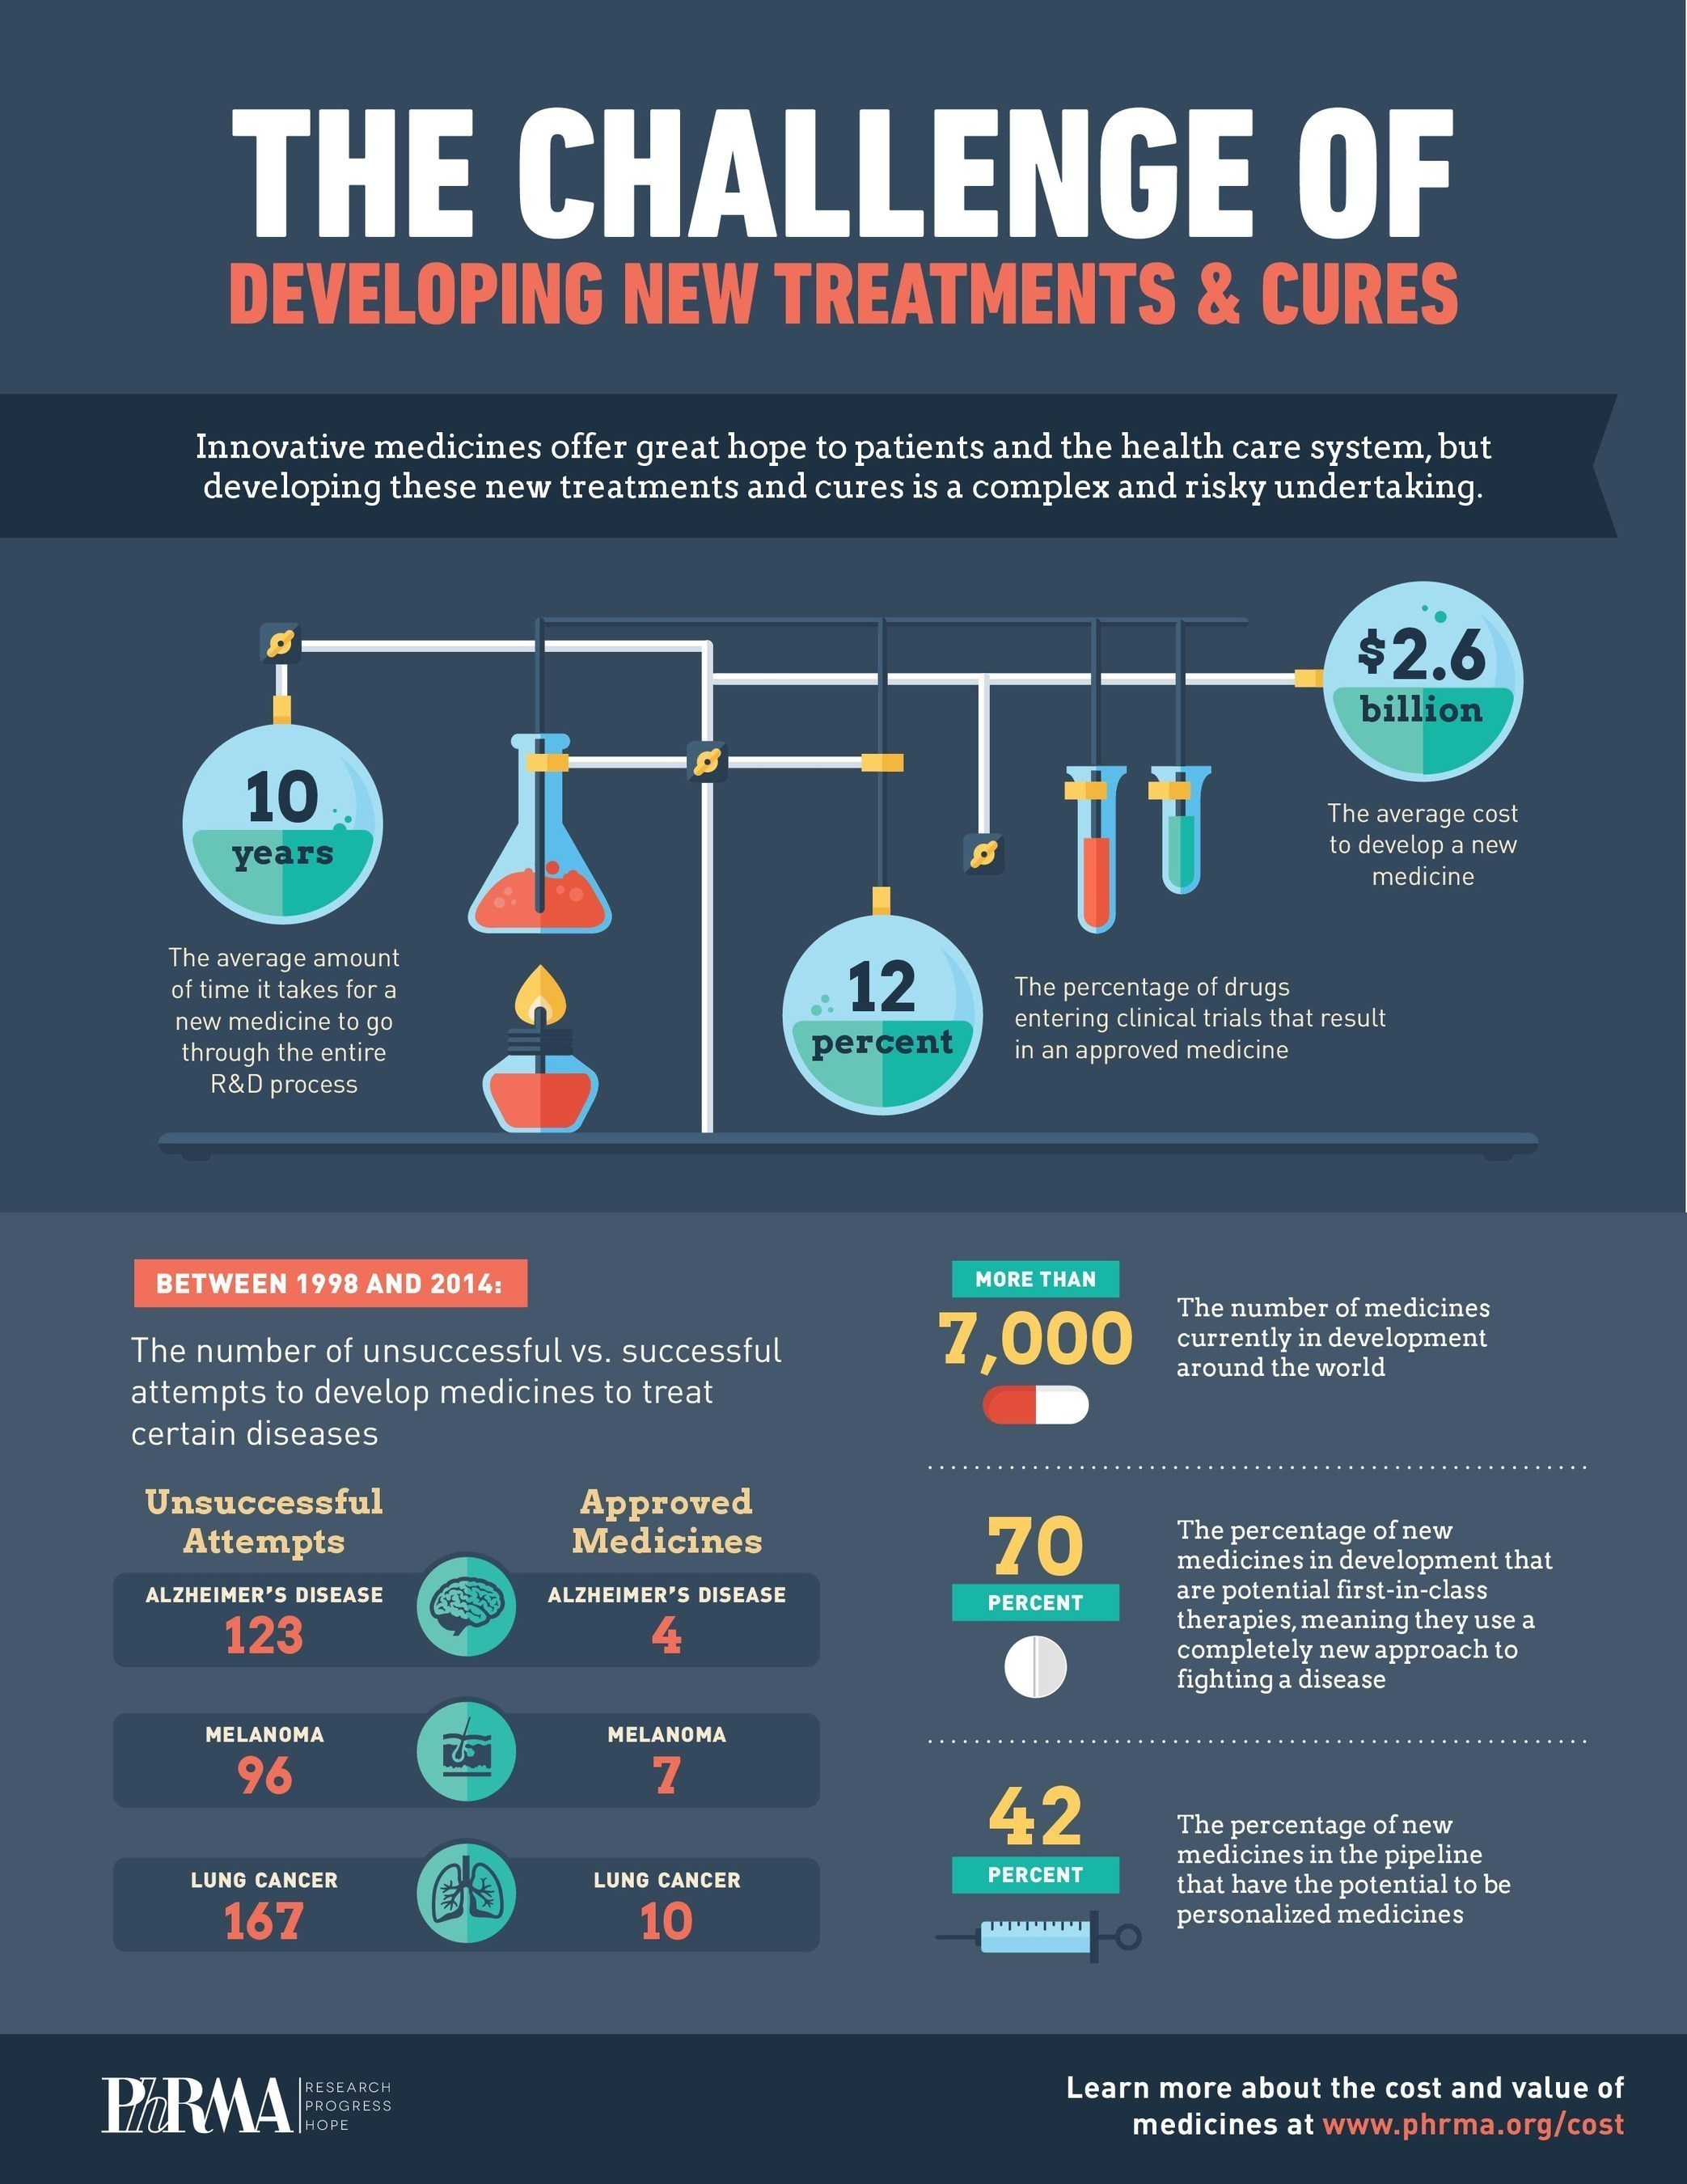 The Challenge of Developing New Treatments & Cures